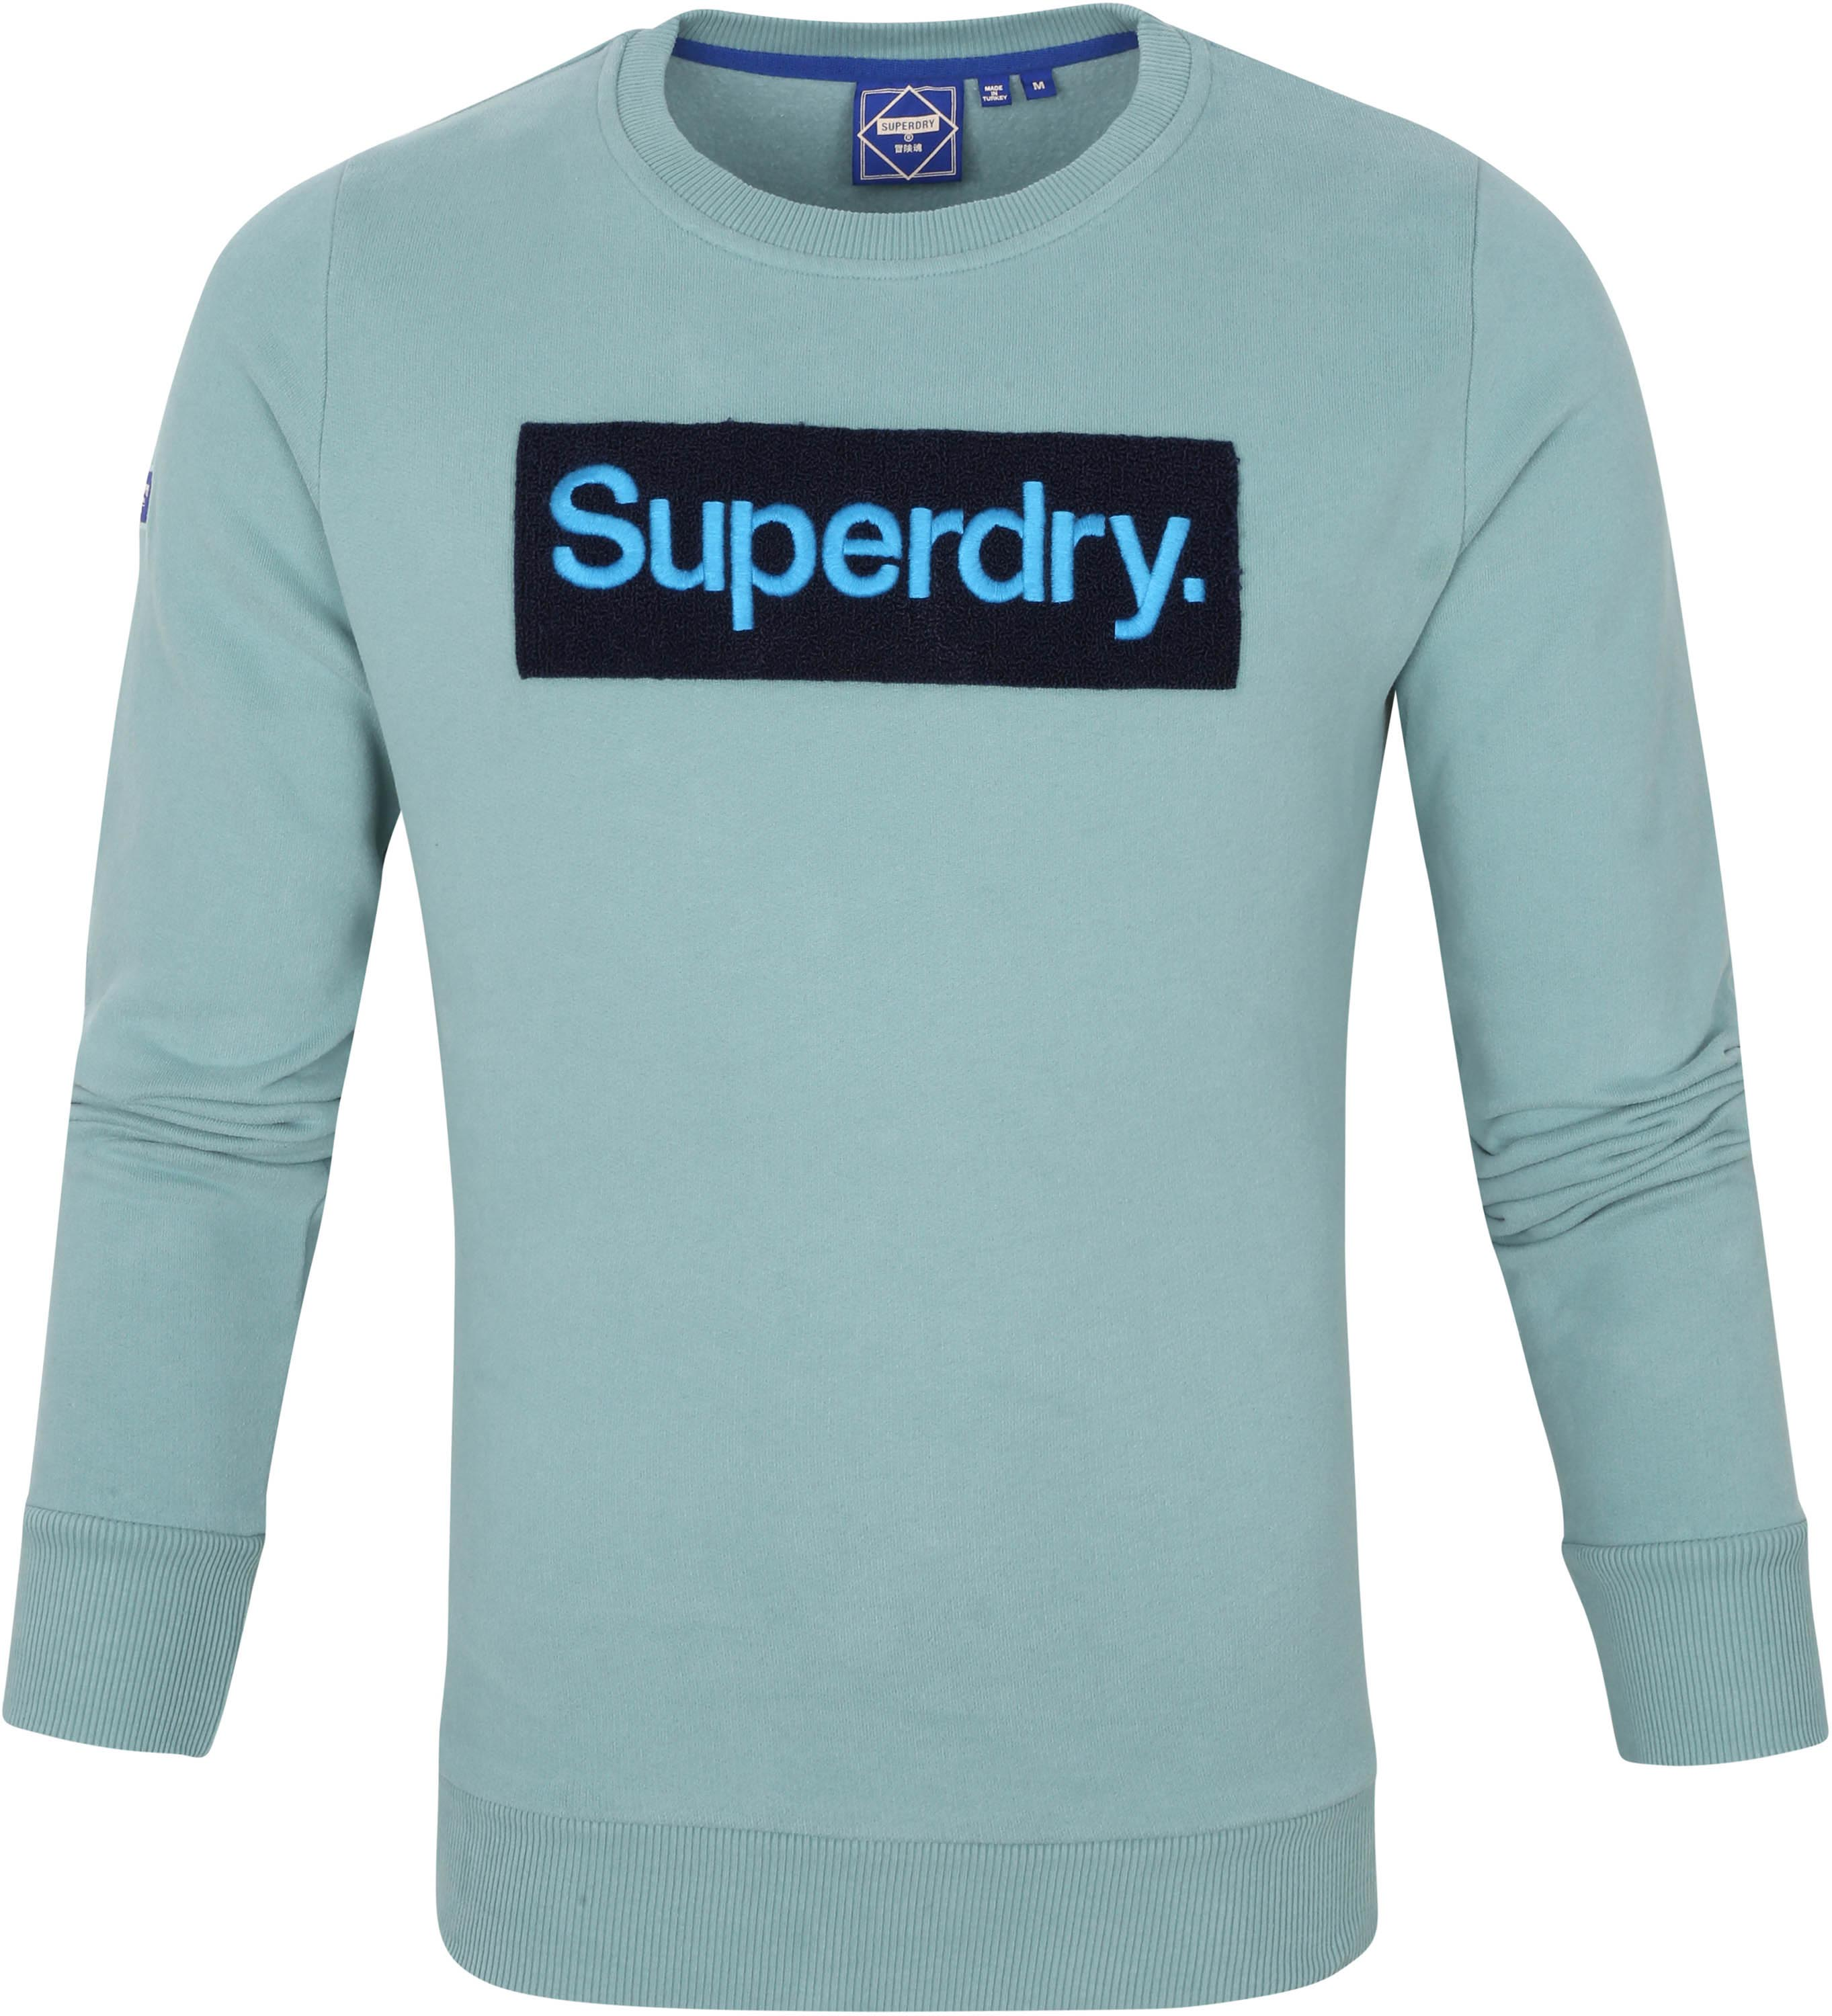 Superdry Sweater Workwear Light Blue